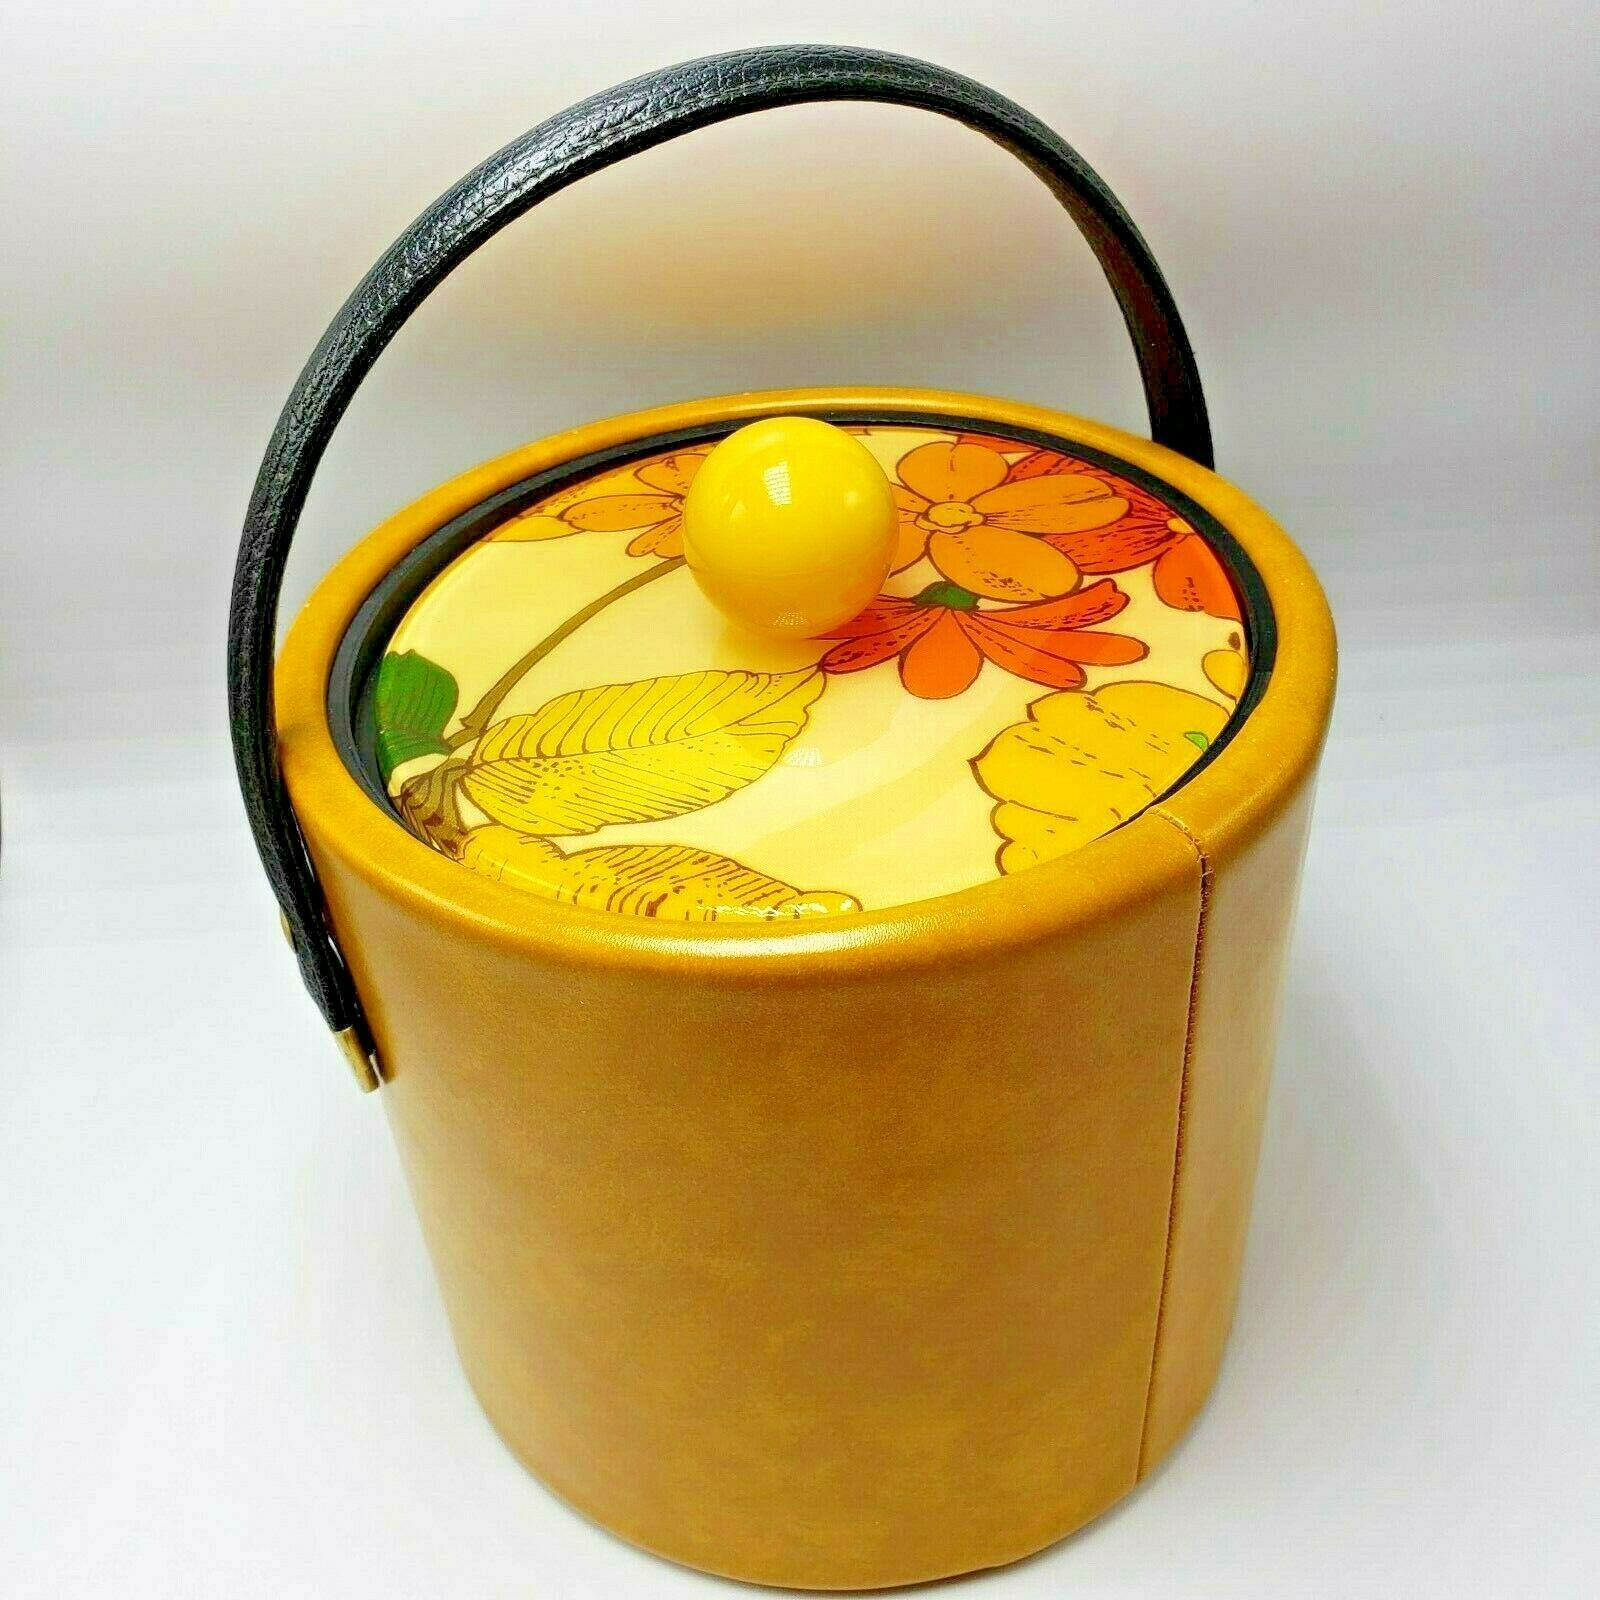 Primary image for Yellow Ice Bucket Flowers Orange Lucite Naugahyde Mustard Nor-Scot Bar Barware